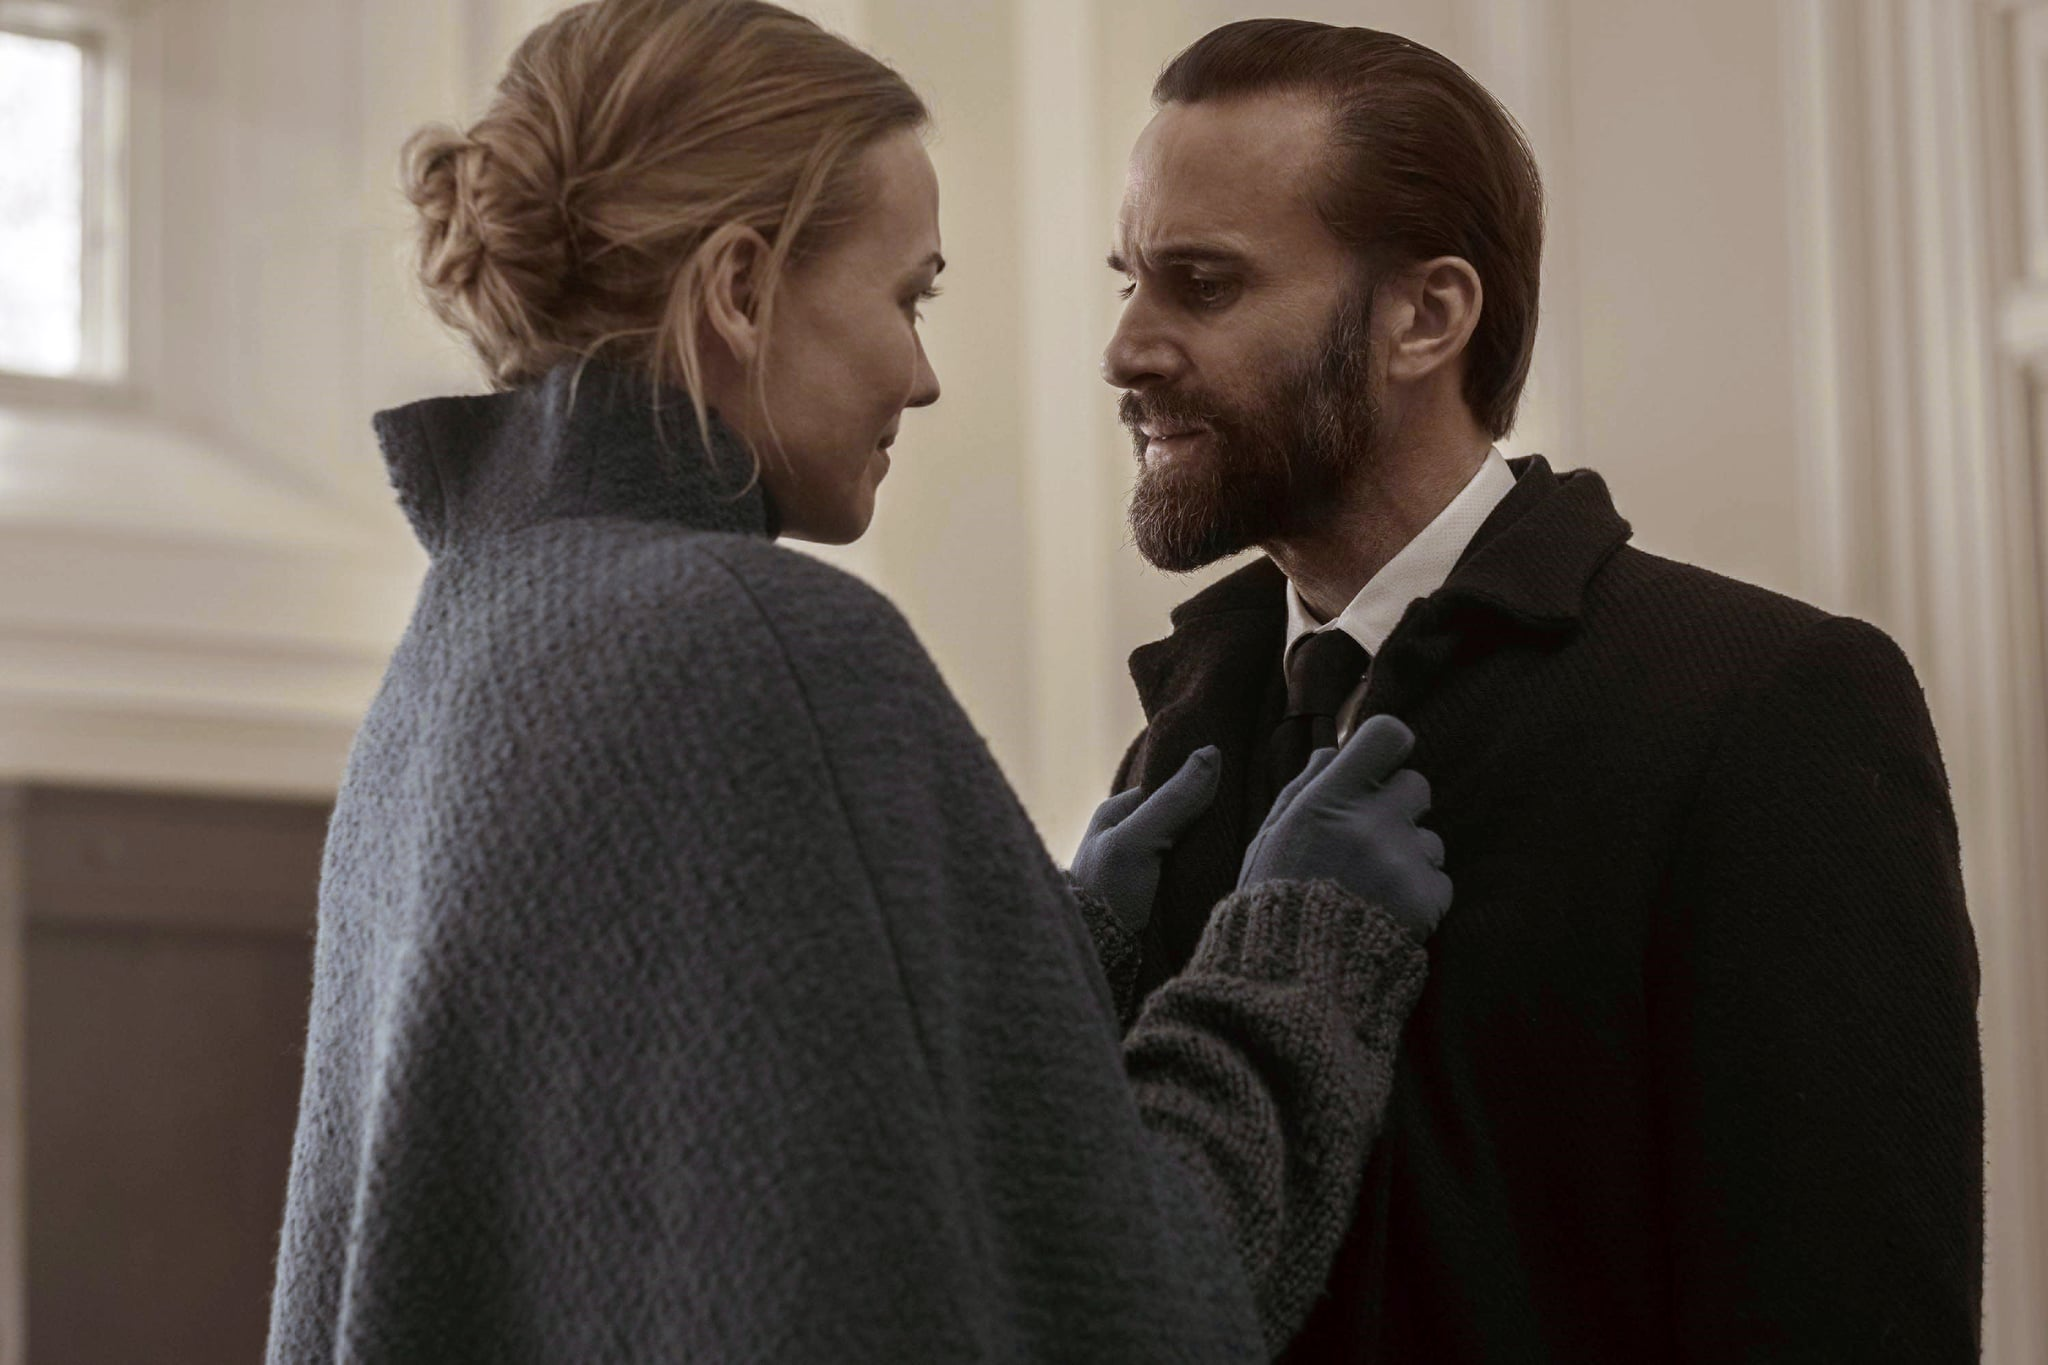 THE HANDMAID'S TALE, l-r: Yvonne Strahovski, Joseph Fiennes in 'Holly' (Season 2, Episode 11, aired June 27, 2018).  Hulu/courtesy Everett Collection